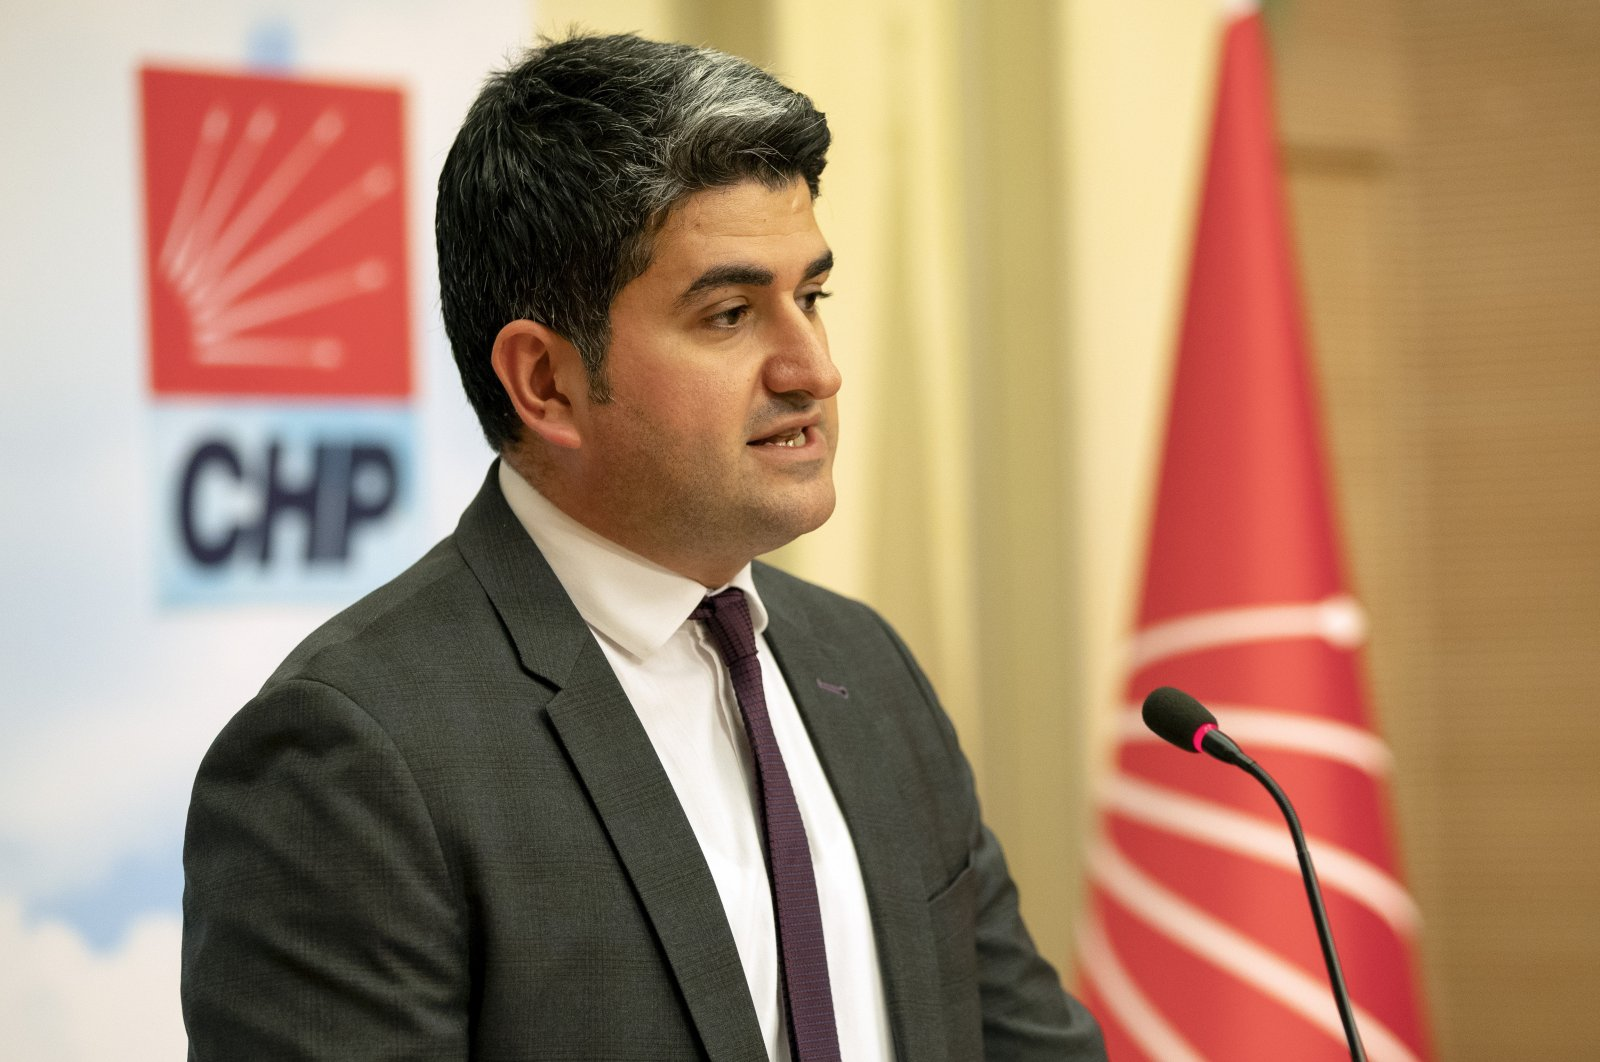 Onursal Adıgüzel, the deputy chair of the main opposition Republican People's Party (CHP). (AA Photo)